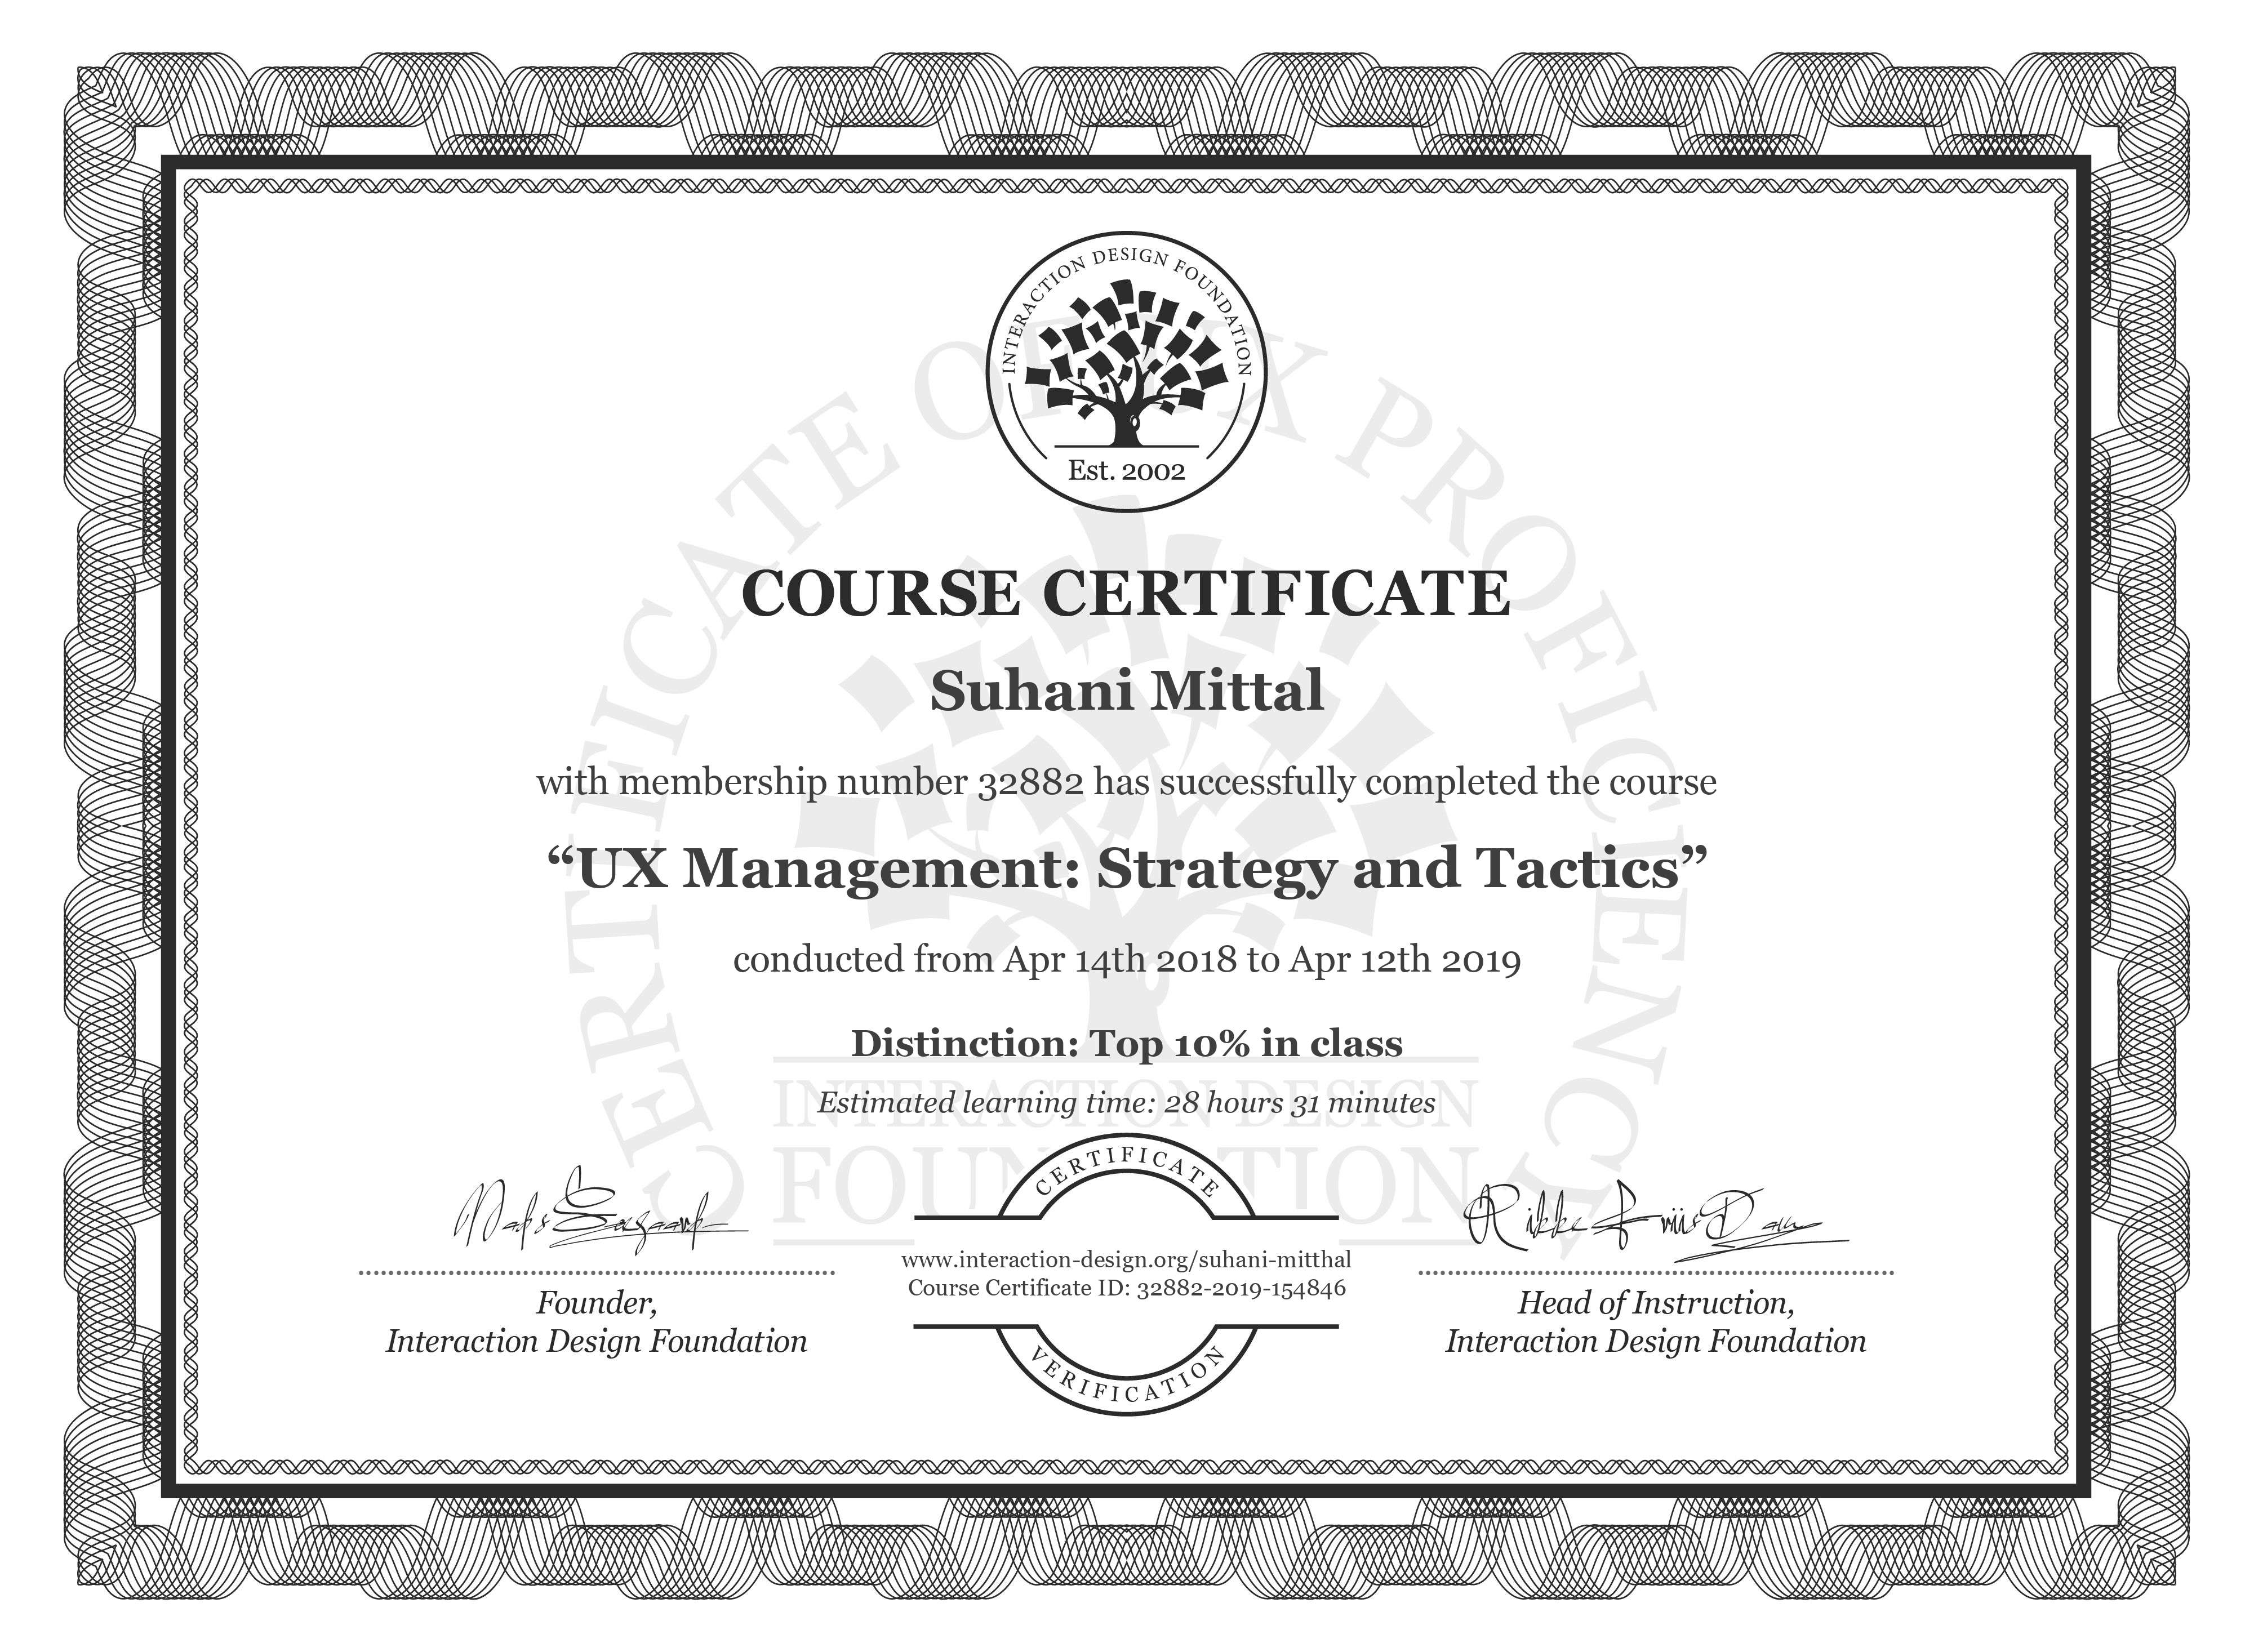 Suhani Mittal: Course Certificate - UX Management: Strategy and Tactics